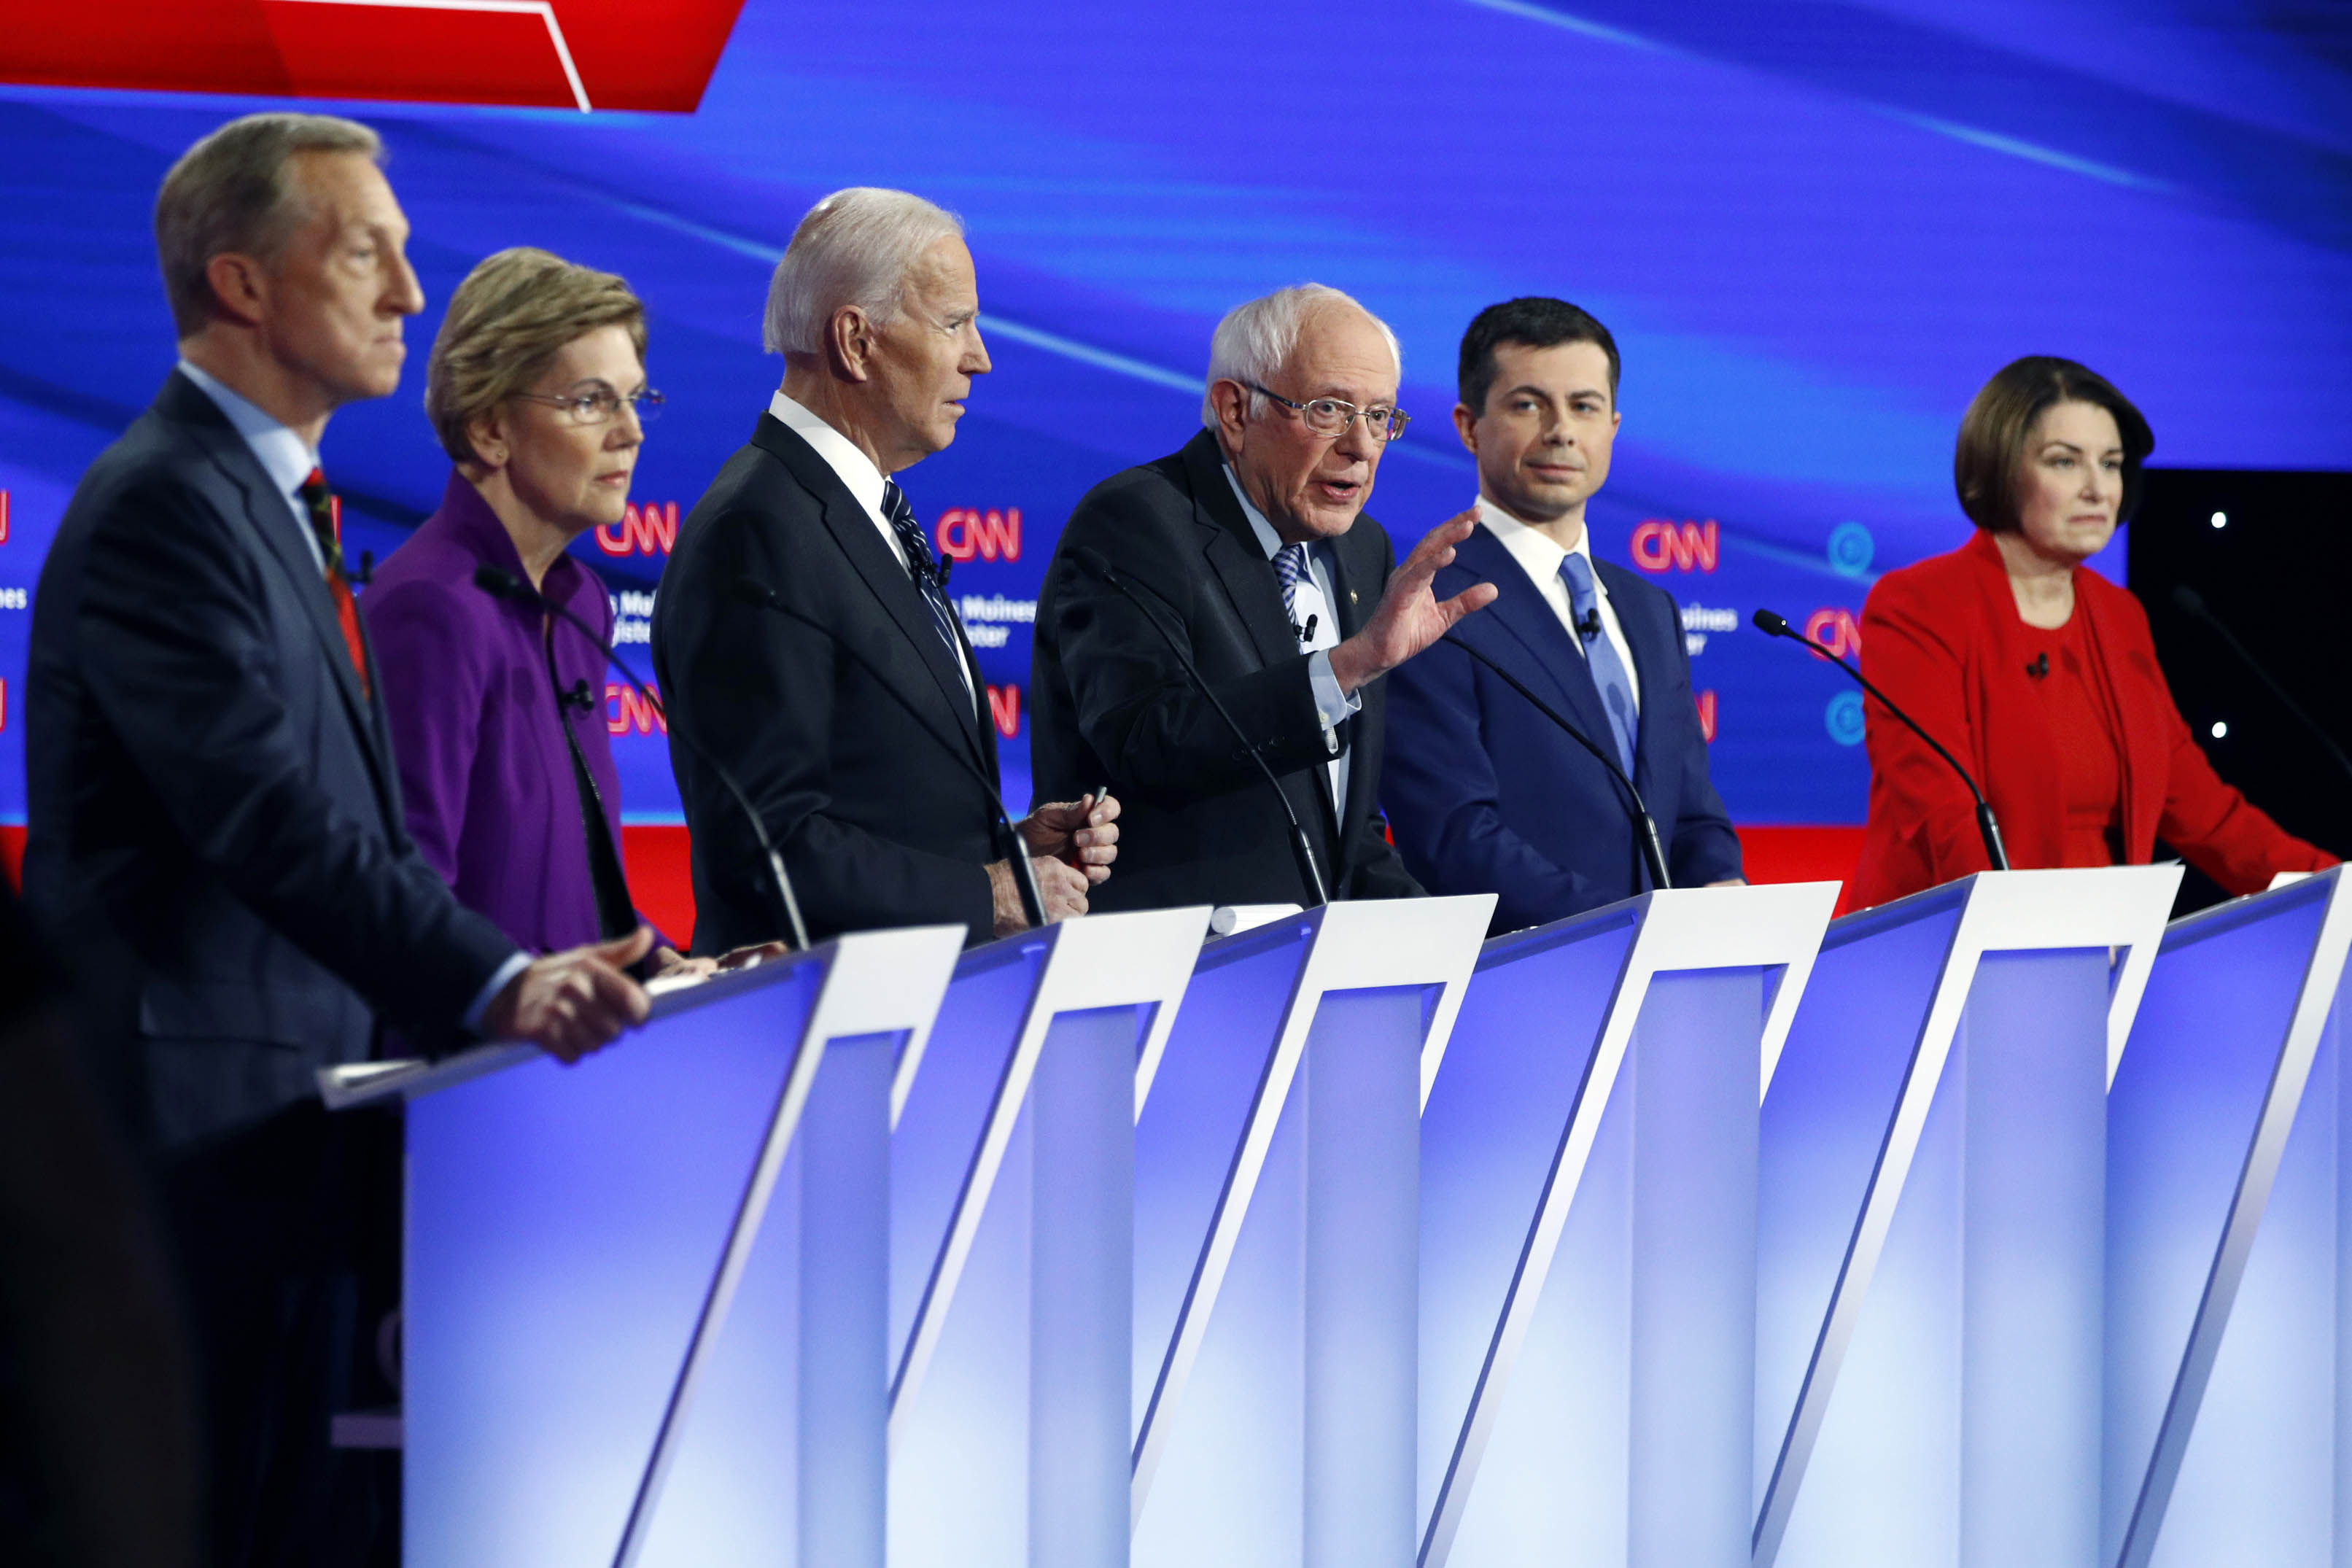 Democratic presidential candidates listen Jan. 14, 2020, during a Democratic presidential primary debate hosted by CNN and the Des Moines Register in Des Moines, Iowa. (AP)